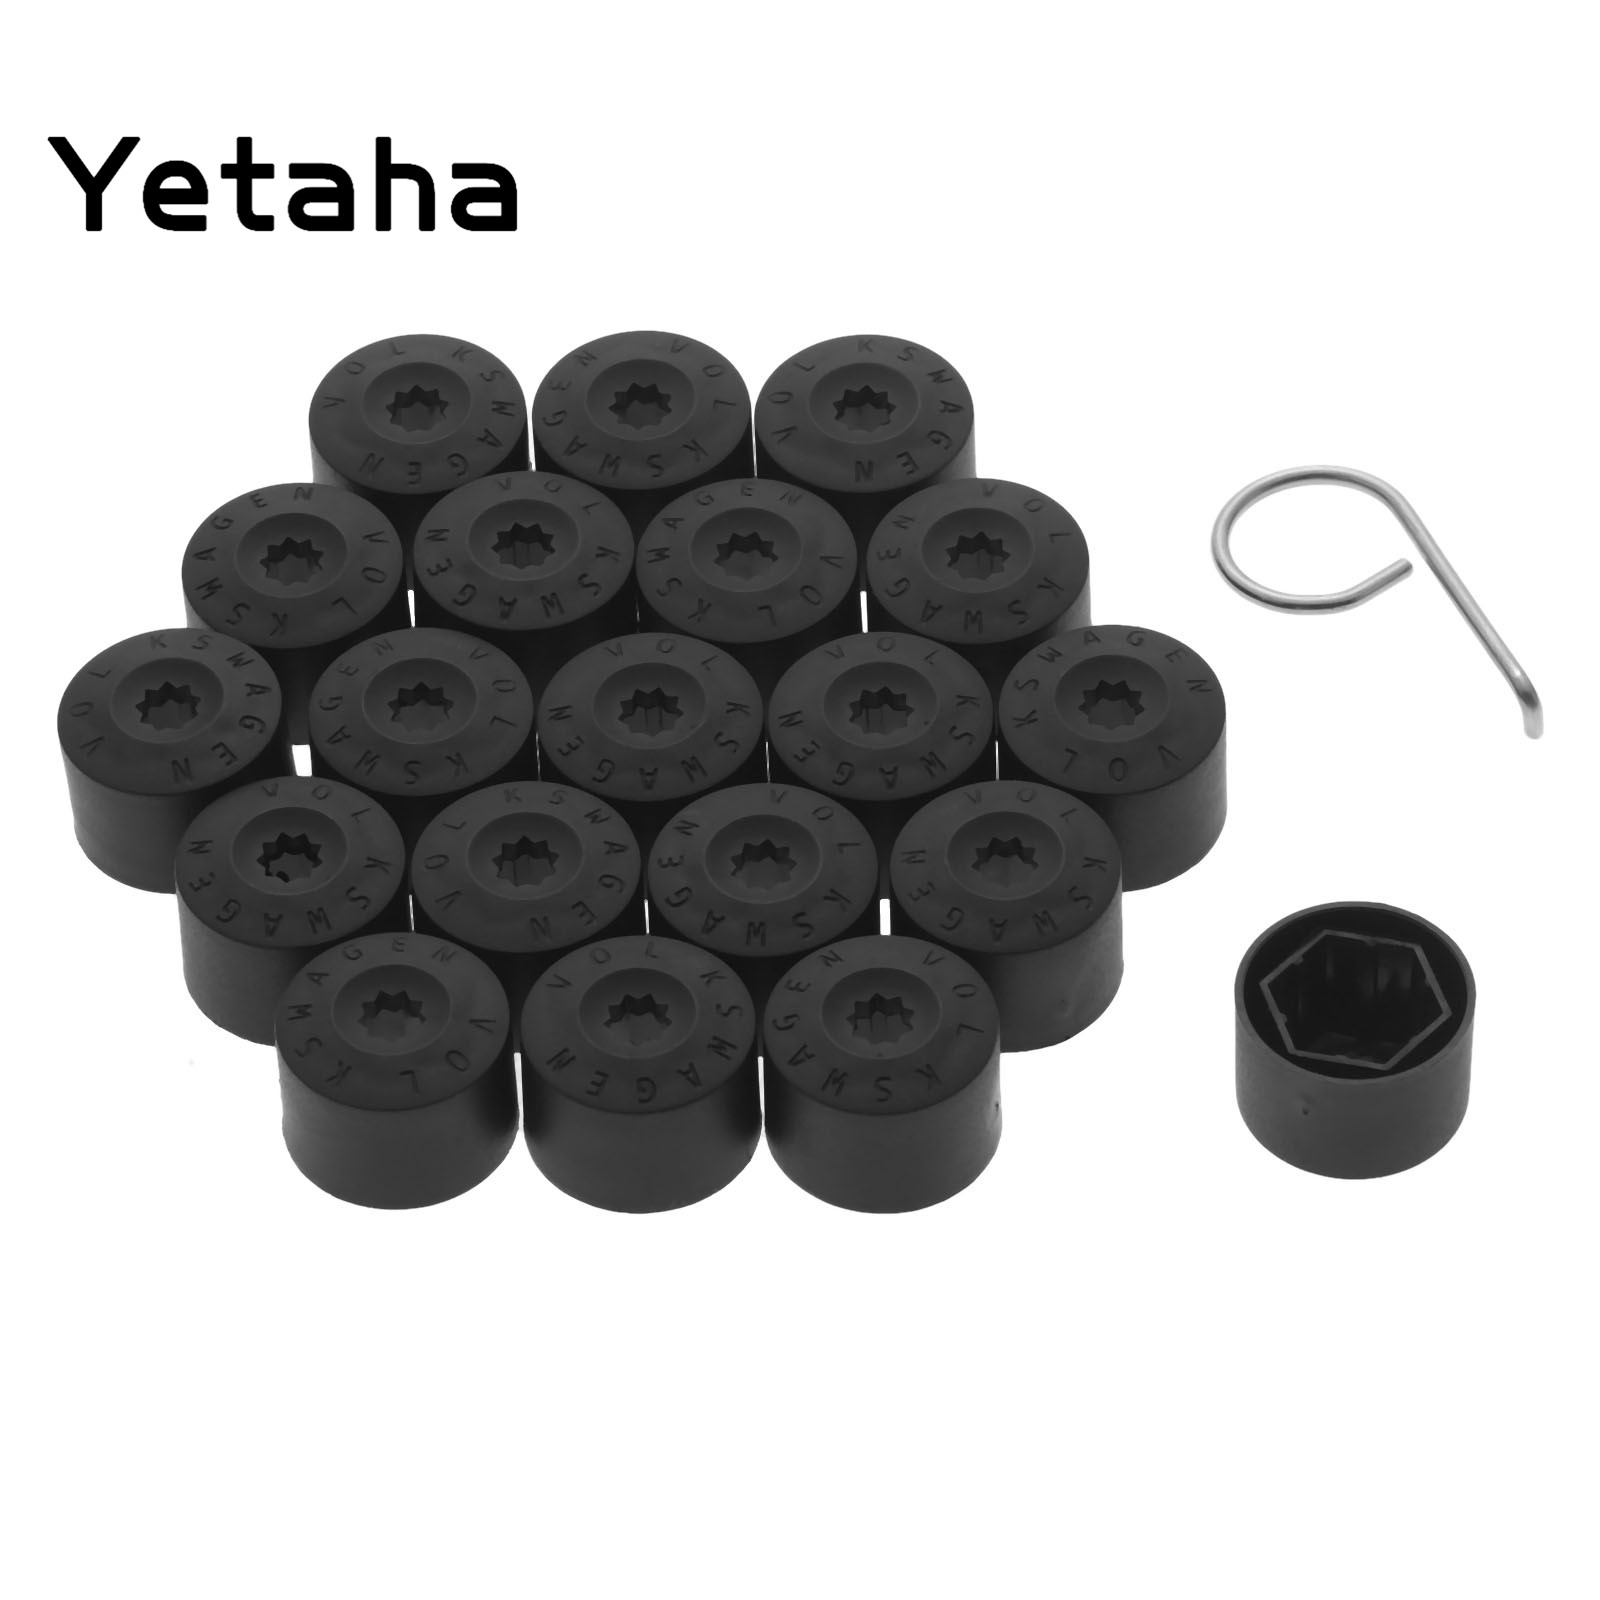 SurePromise 19mm Car Hex Wheel Nut Lug Bolt 16PCS Black Covers Caps 4 Locking Bolt Caps With Removal Tool Puller Tweezers